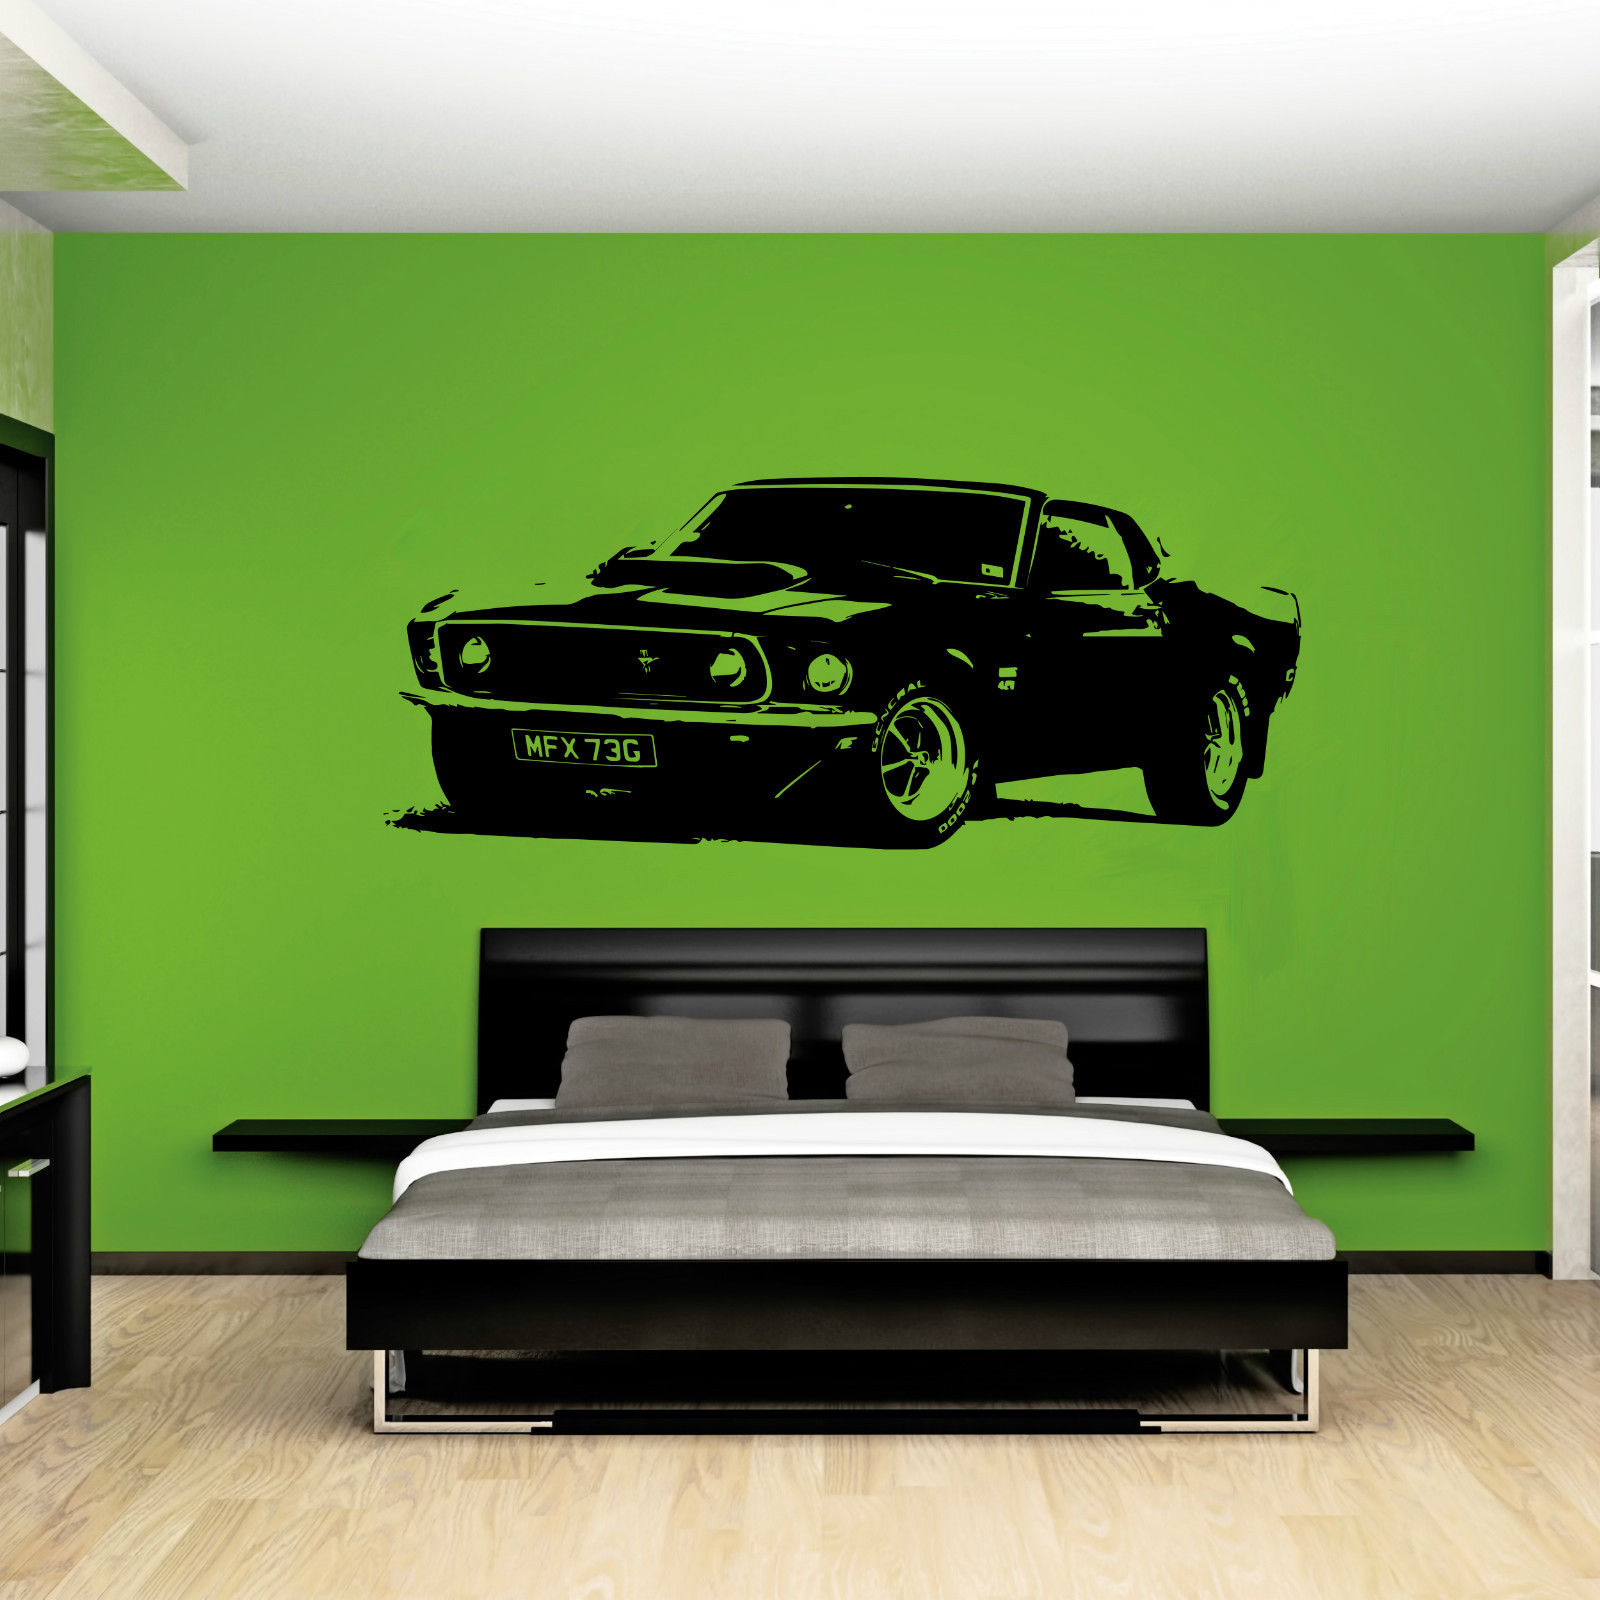 W211 XL Large Car Ford Mustang 1969 Muscle Free Squeegee! Wall Art Decal / Sticker home decor(China (Mainland))